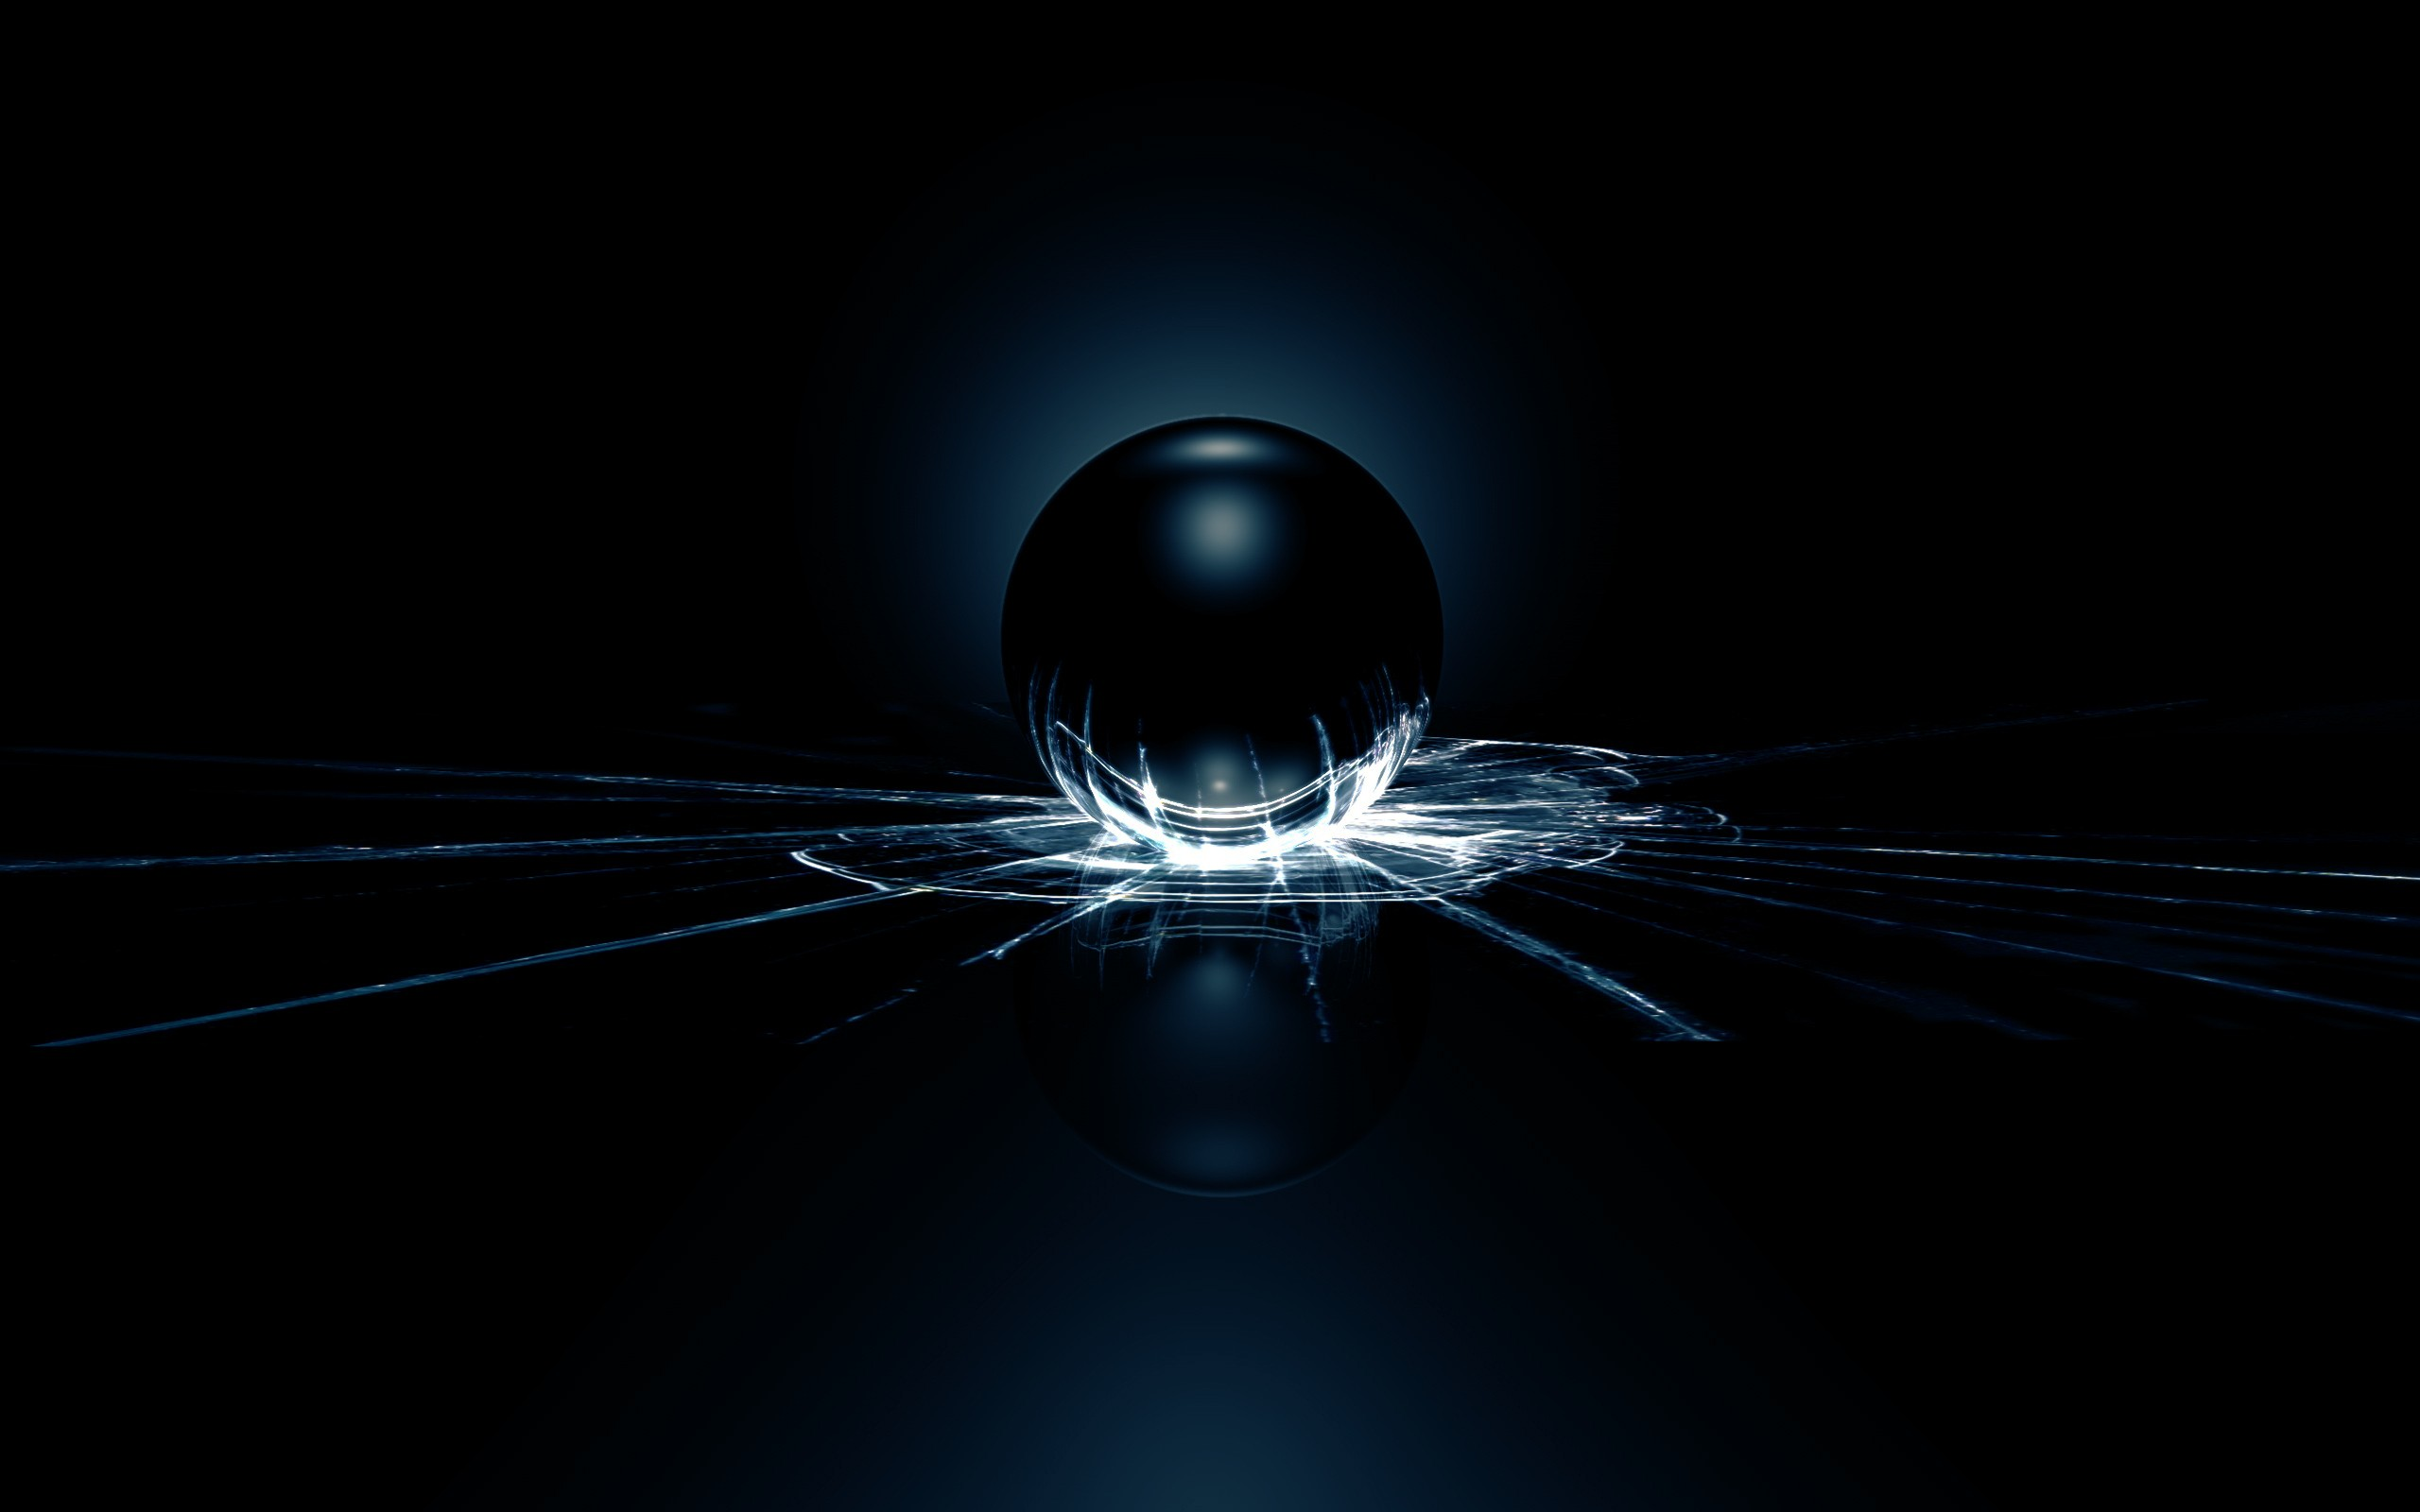 3D wallpaper with a steel ball to break the glass